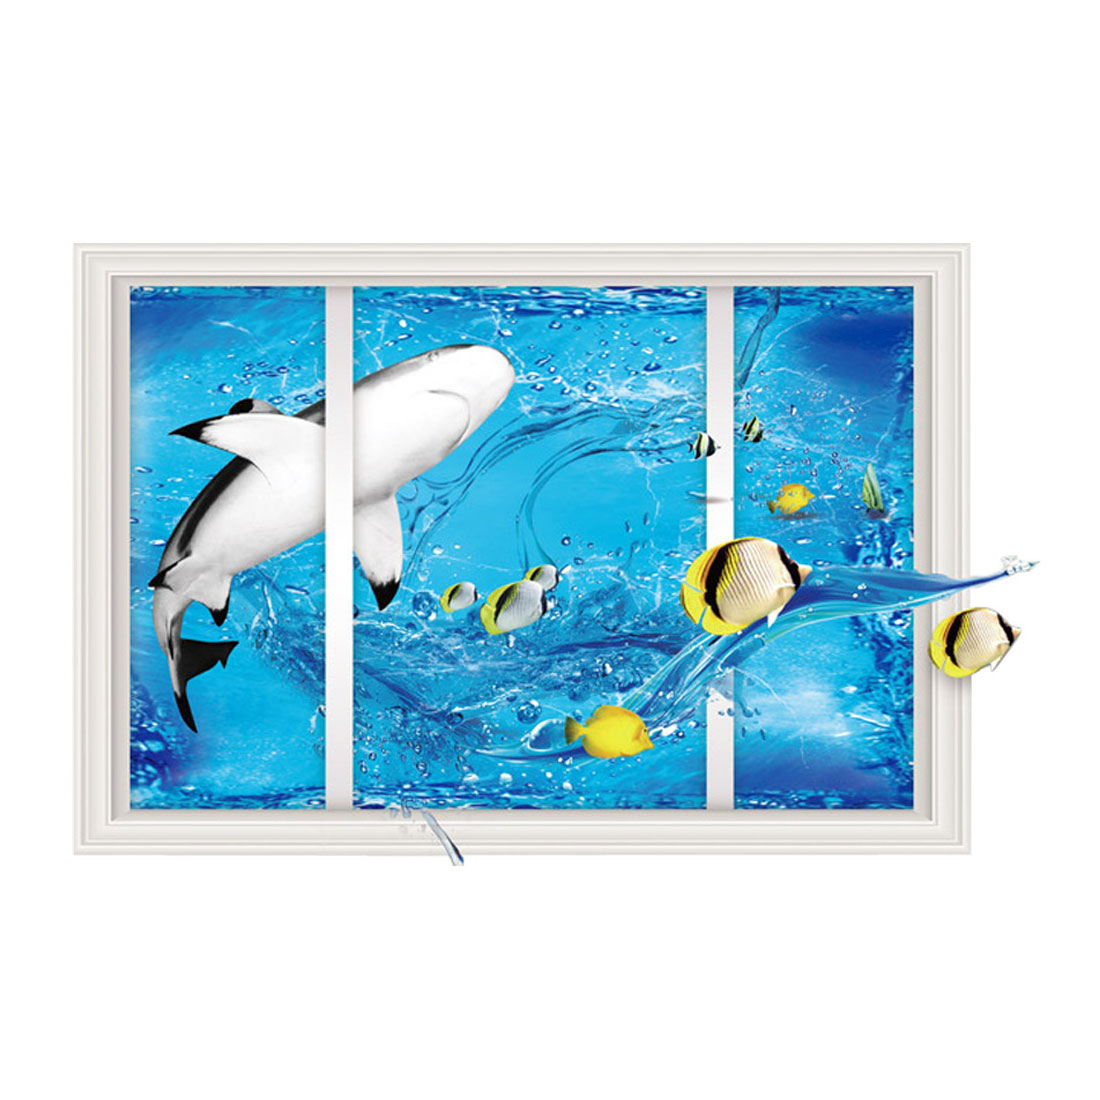 Underwater Animal Pattern Wall Stickers Self-stick Artificial Decal Living Room